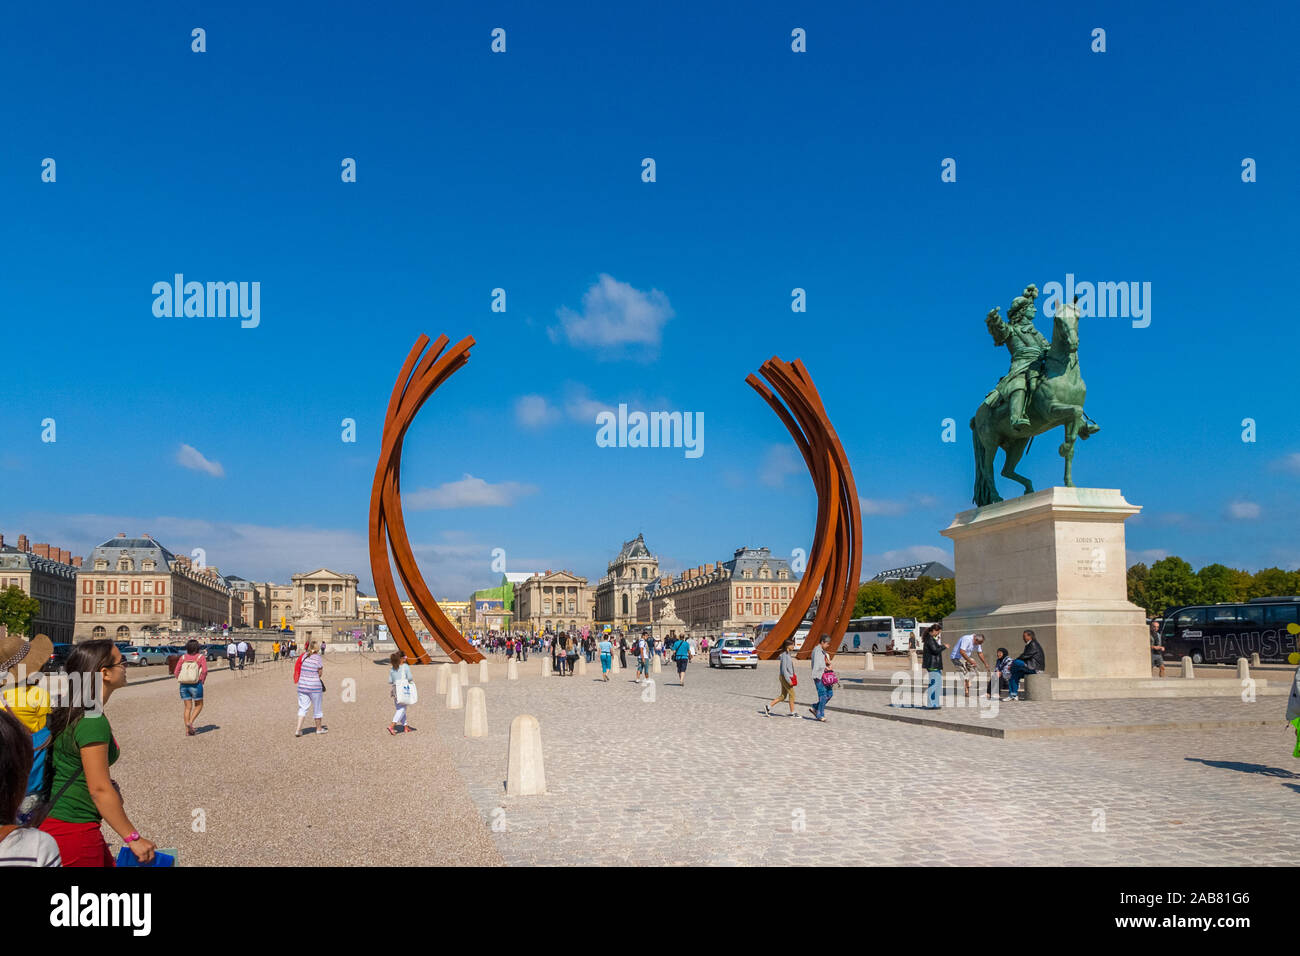 Lovely view of the Louis XIV equestrian statue and the sculpture 85.8° Arc x 16 on Place d'Armes with the Château de Versailles in the background. Stock Photo